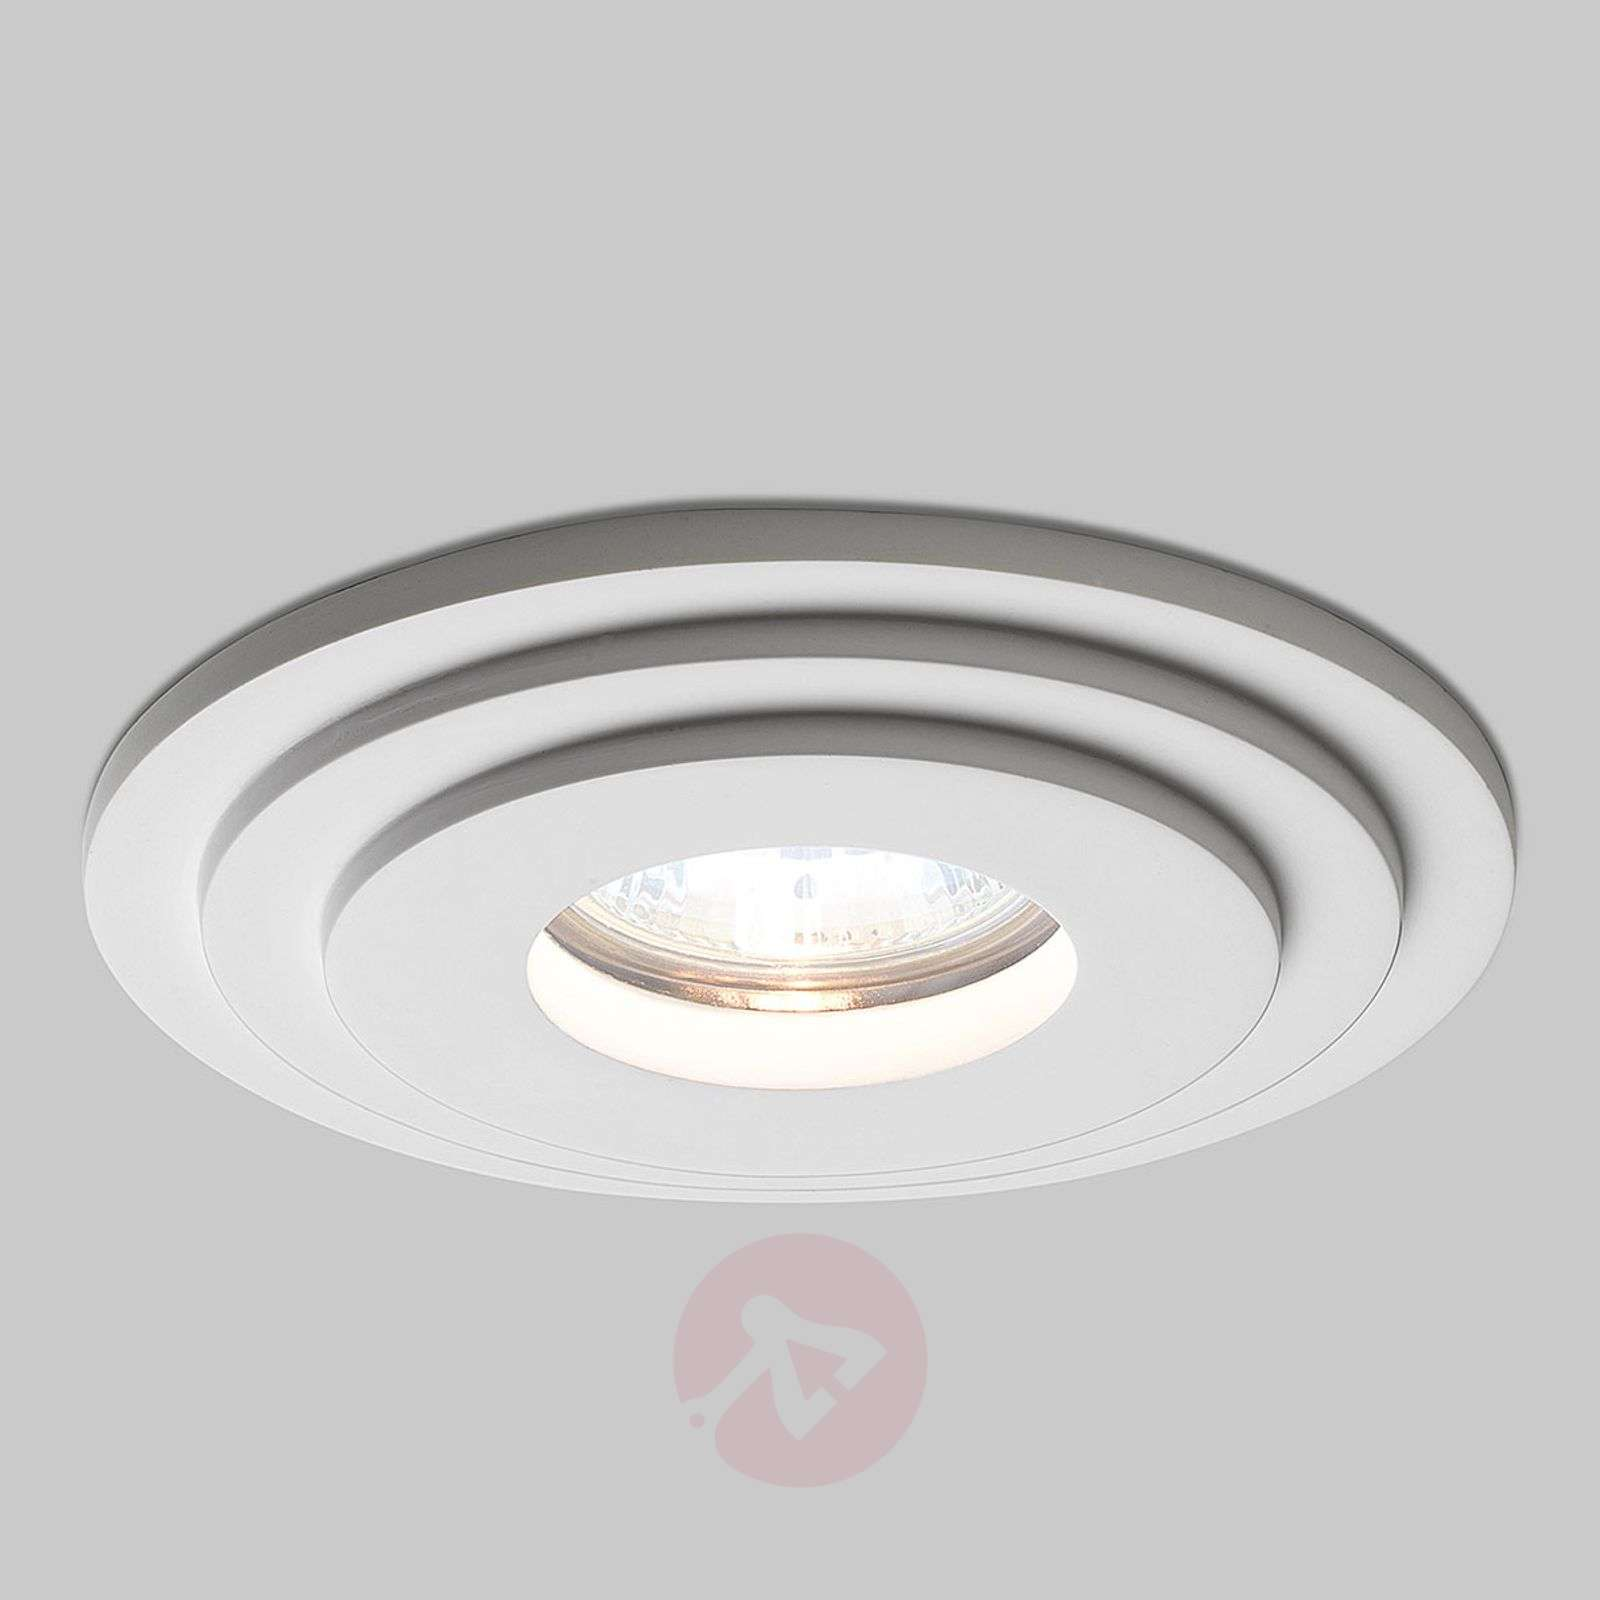 Brembo Built-In Ceiling Light Round Elegant-1020095-02